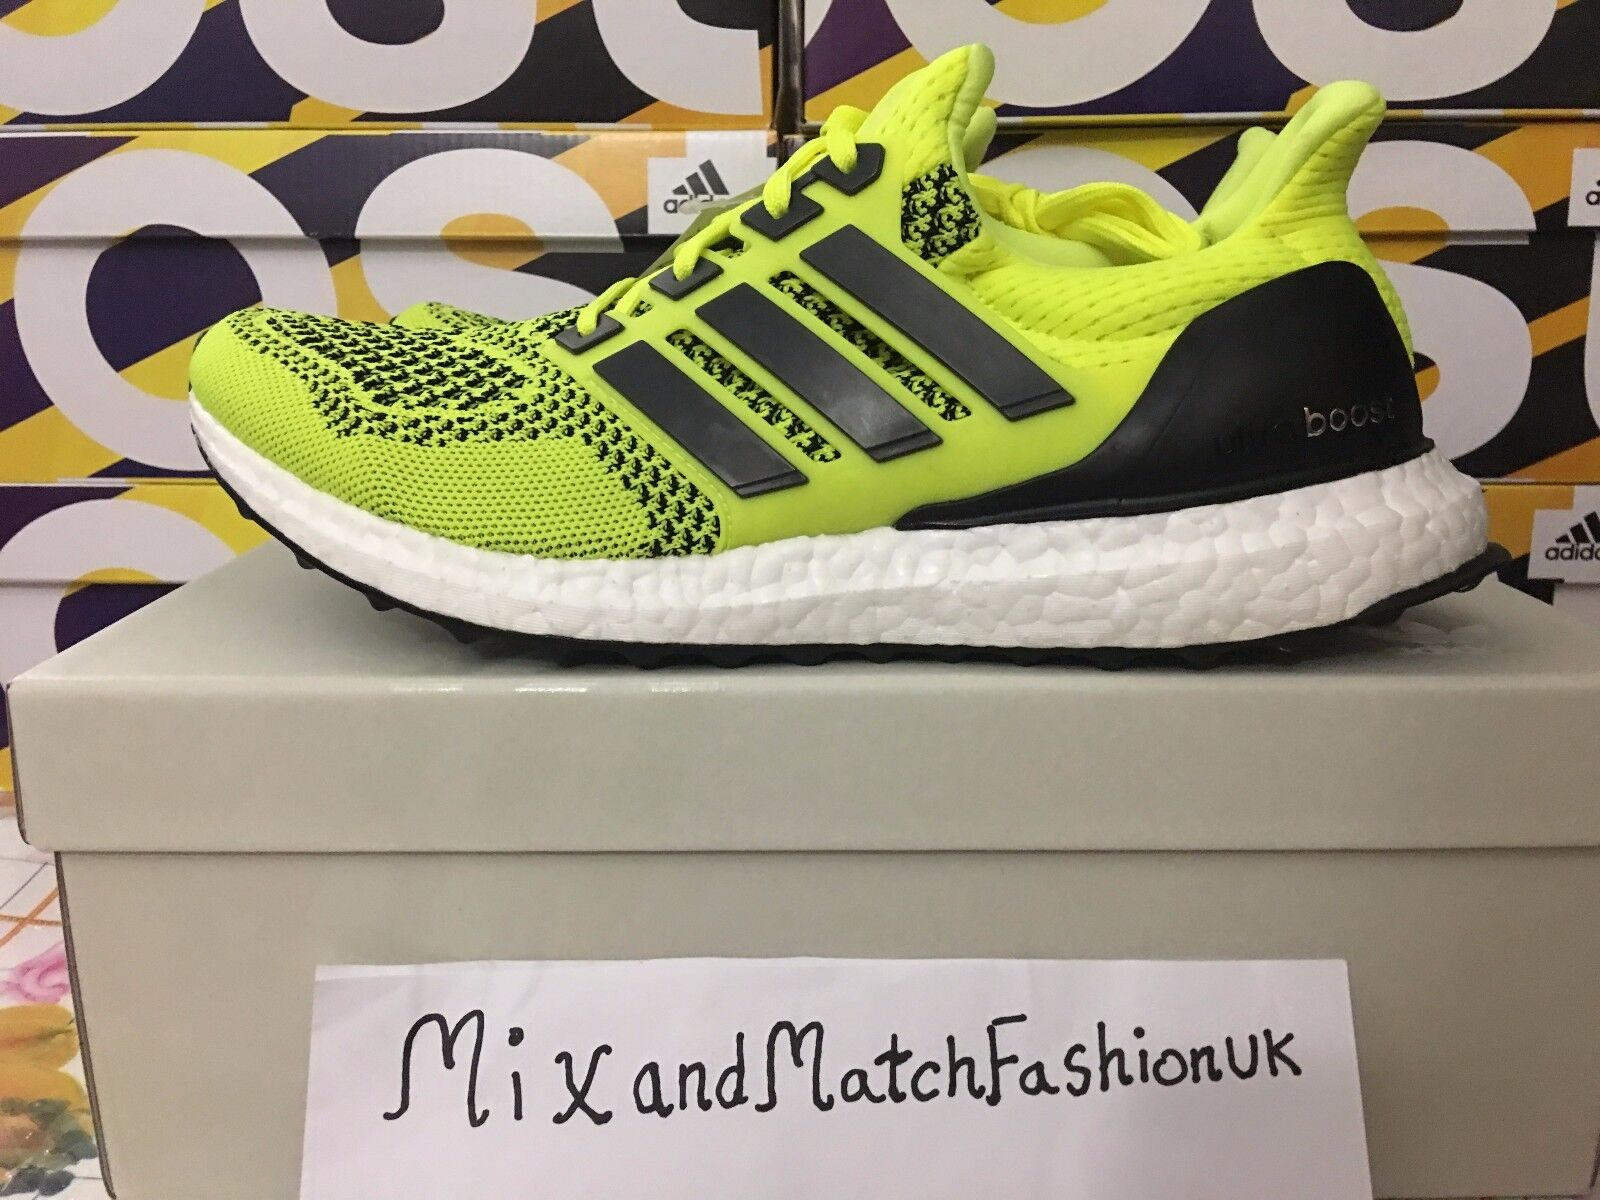 e90f9e134dc adidas Ultra Boost Solar Yellow S77414 UK 8.5 for sale online